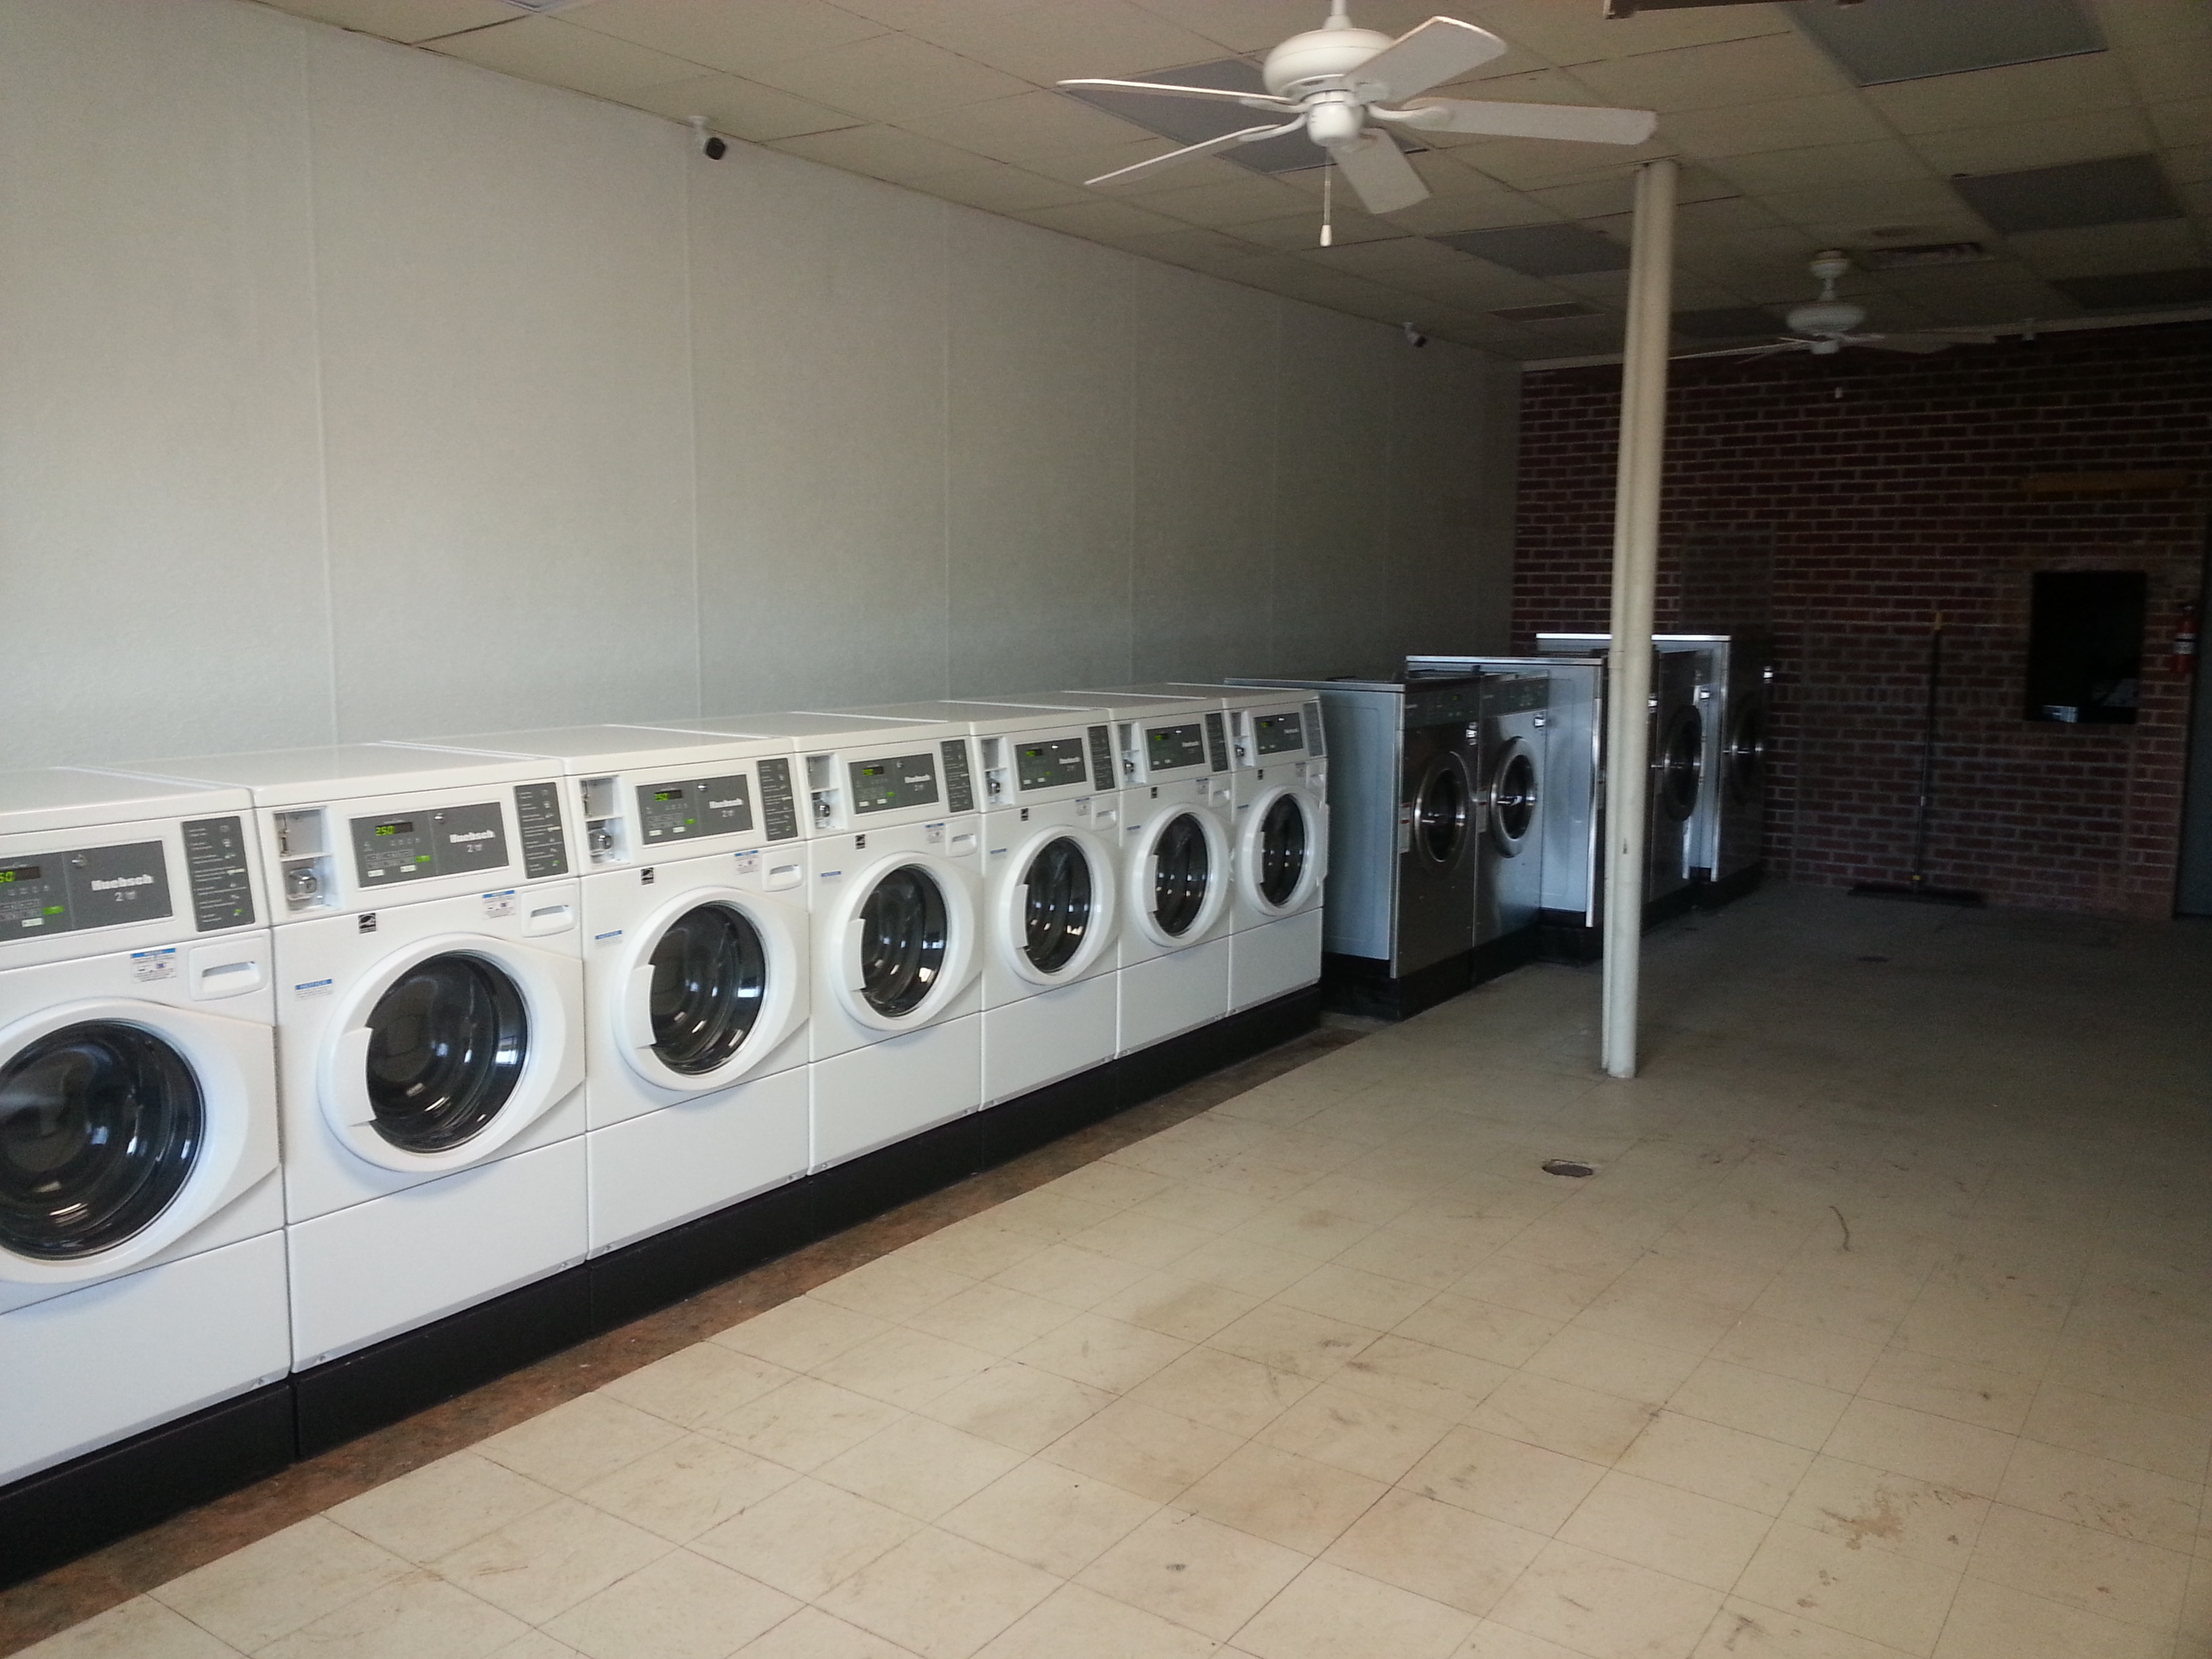 RE: How hard to operate unattended Laundromat?